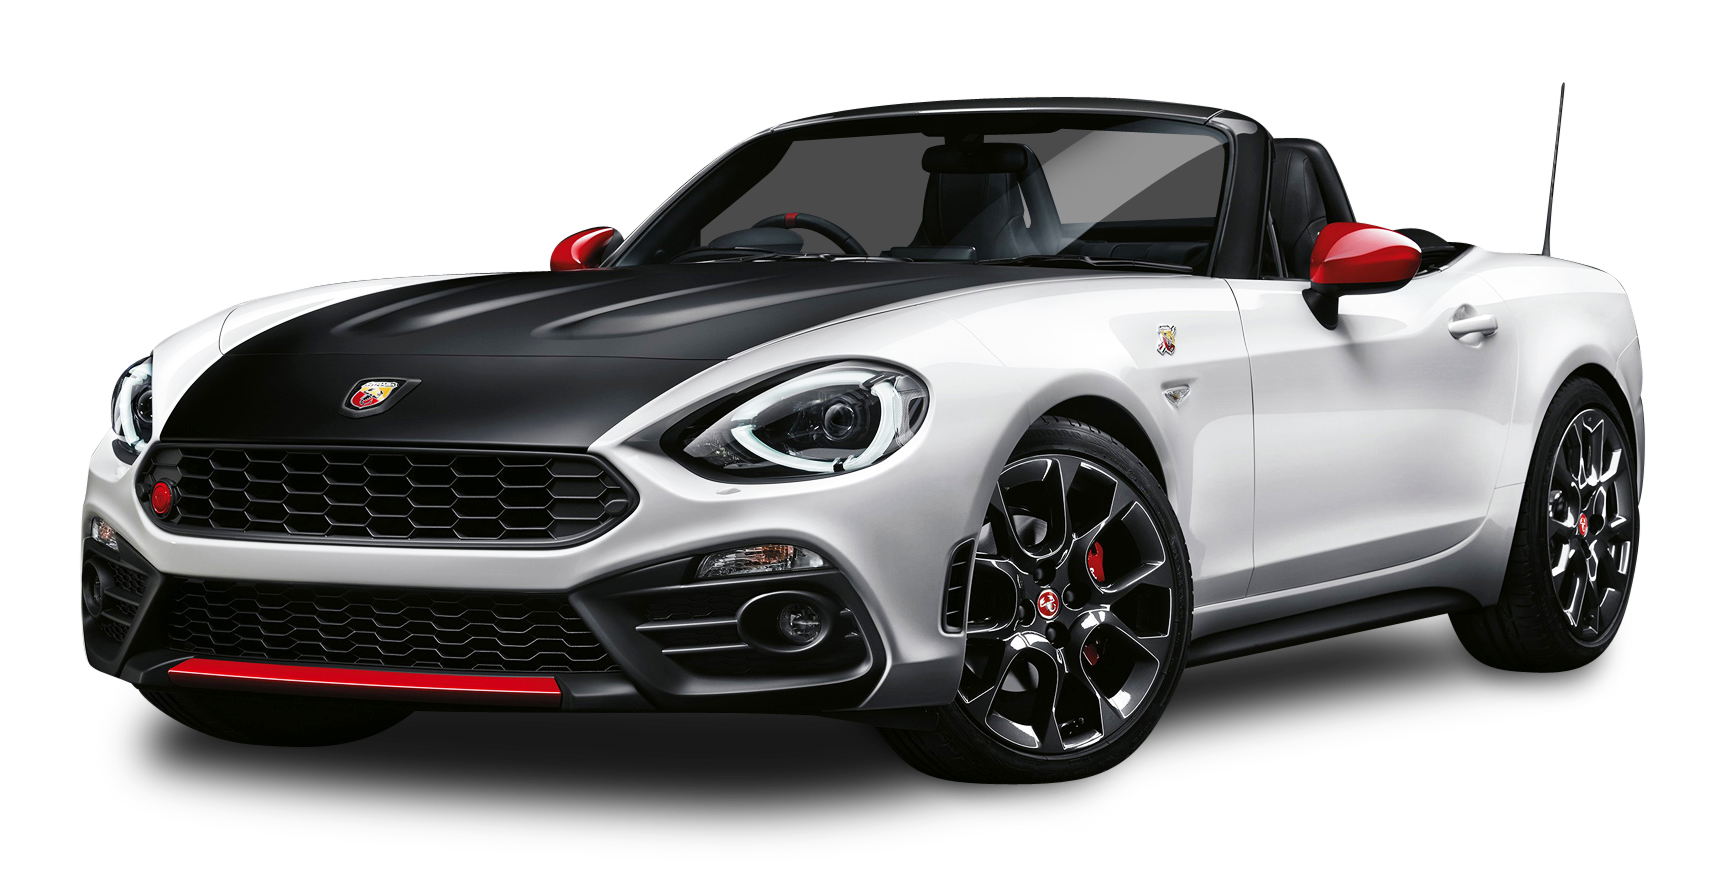 chiptuning abarth 124 spider 2016 en nieuwer 1 4. Black Bedroom Furniture Sets. Home Design Ideas